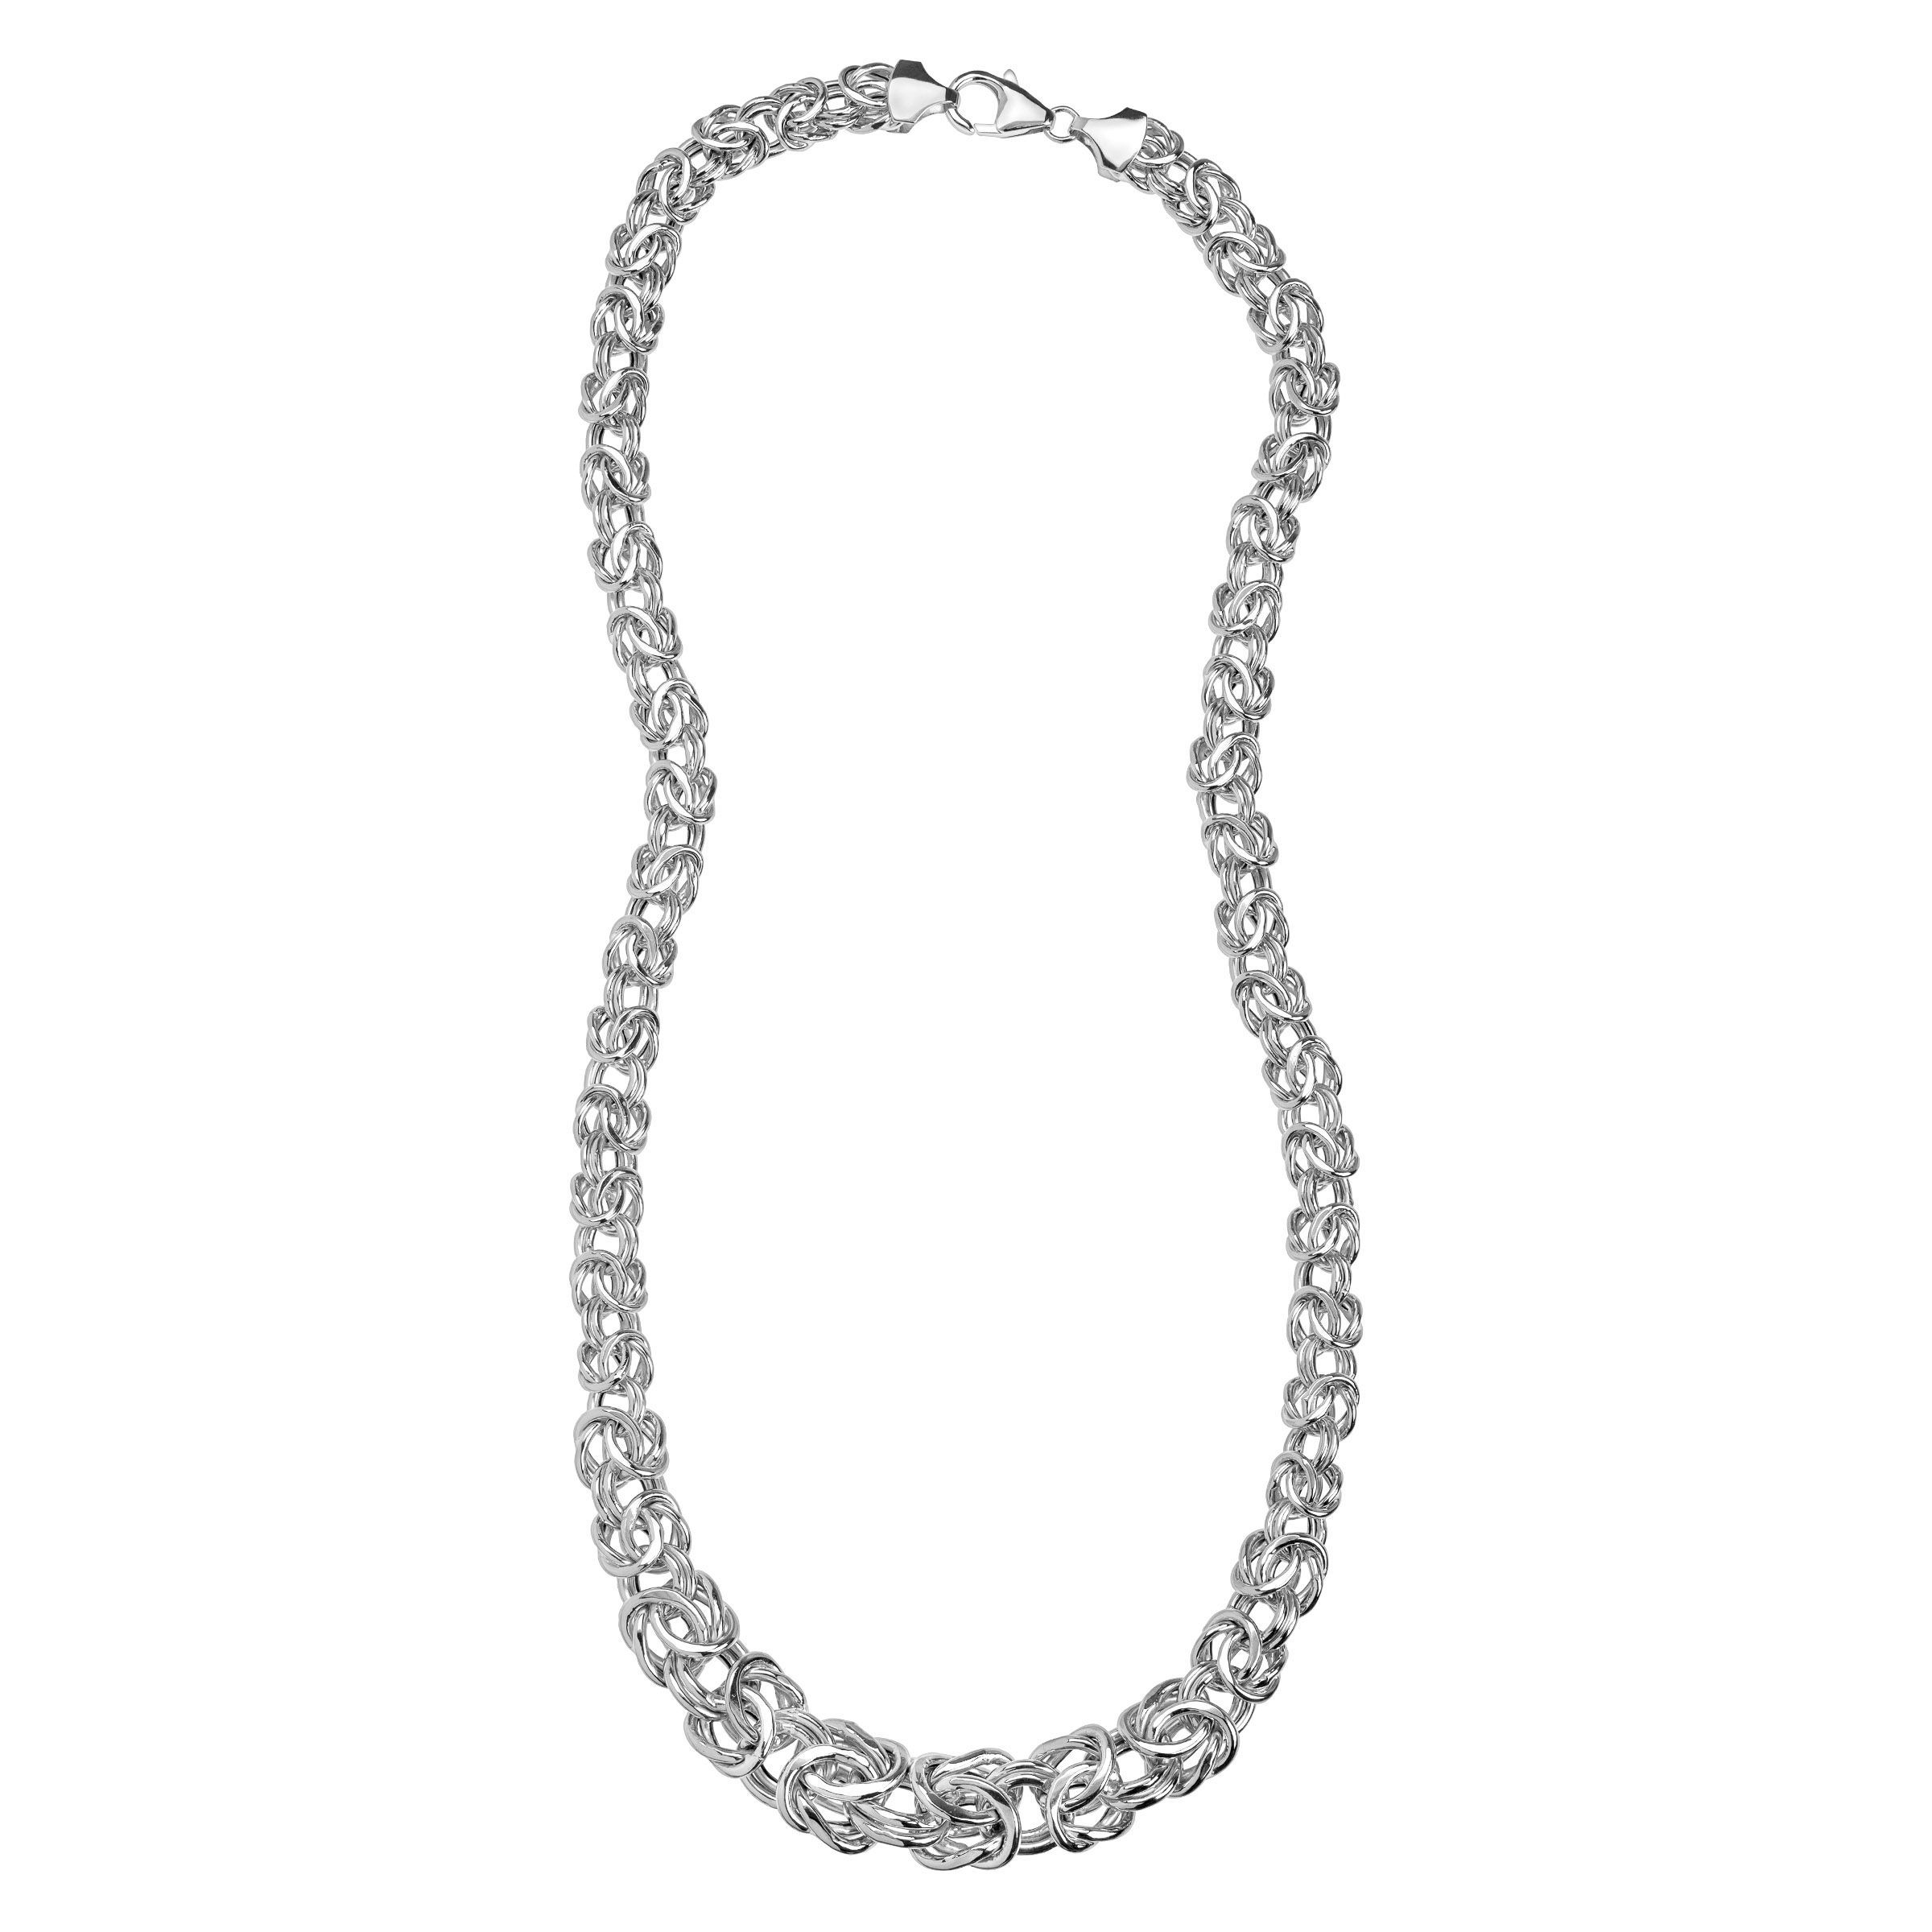 rhodium mm sterling com byzantine necklace square amazon silver dp chain heavy